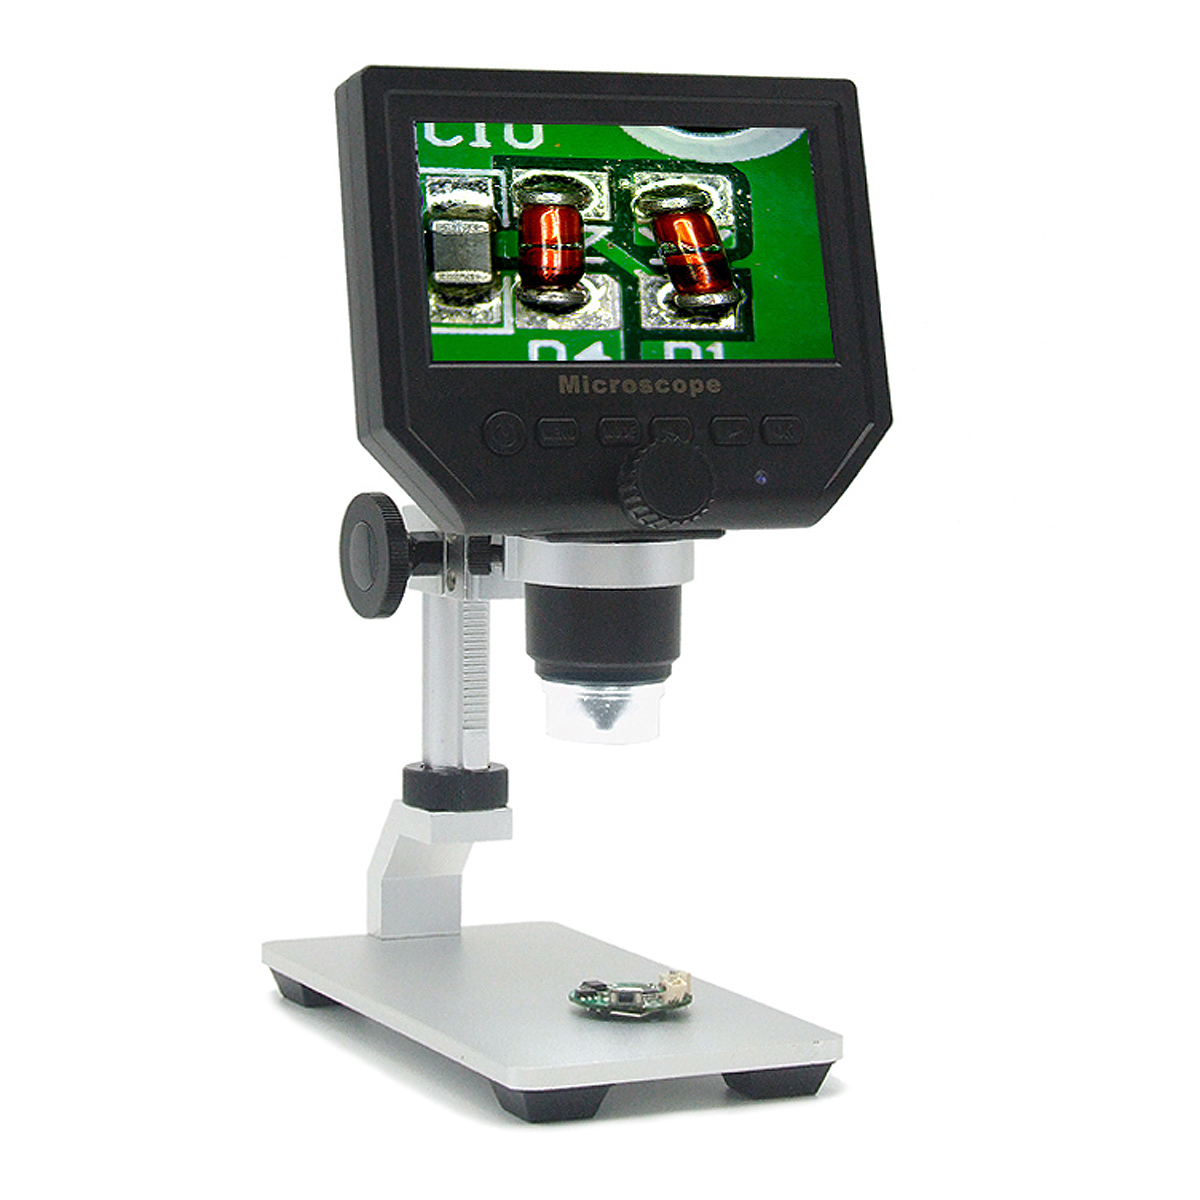 MUSTOOL Digital 1 600X 3 6MP 4 3inch HD LCD Display Microscope Continuous Magnifier with Aluminum